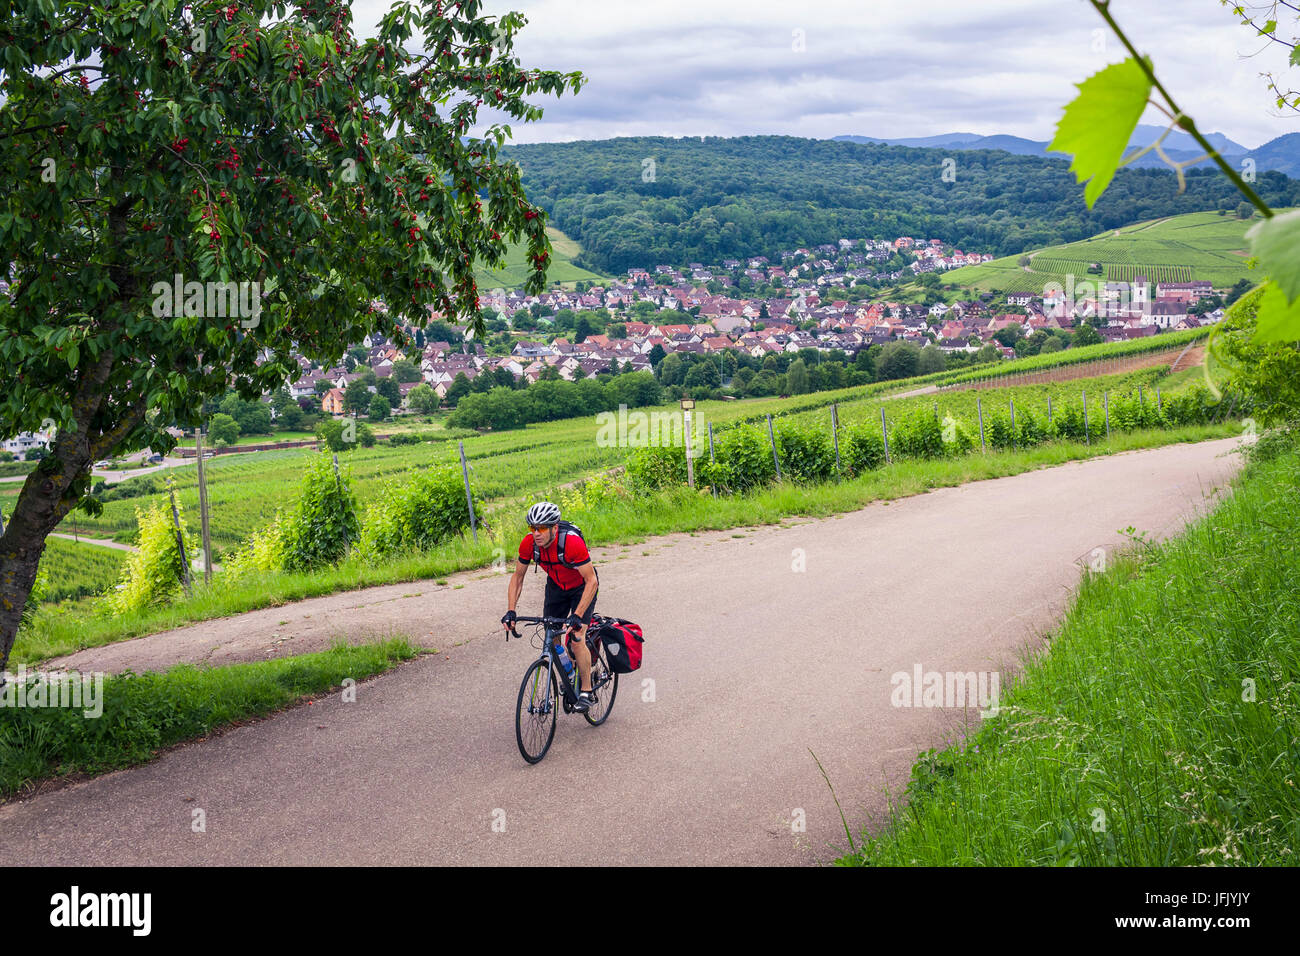 Man on solo bicycle road trip - Stock Image